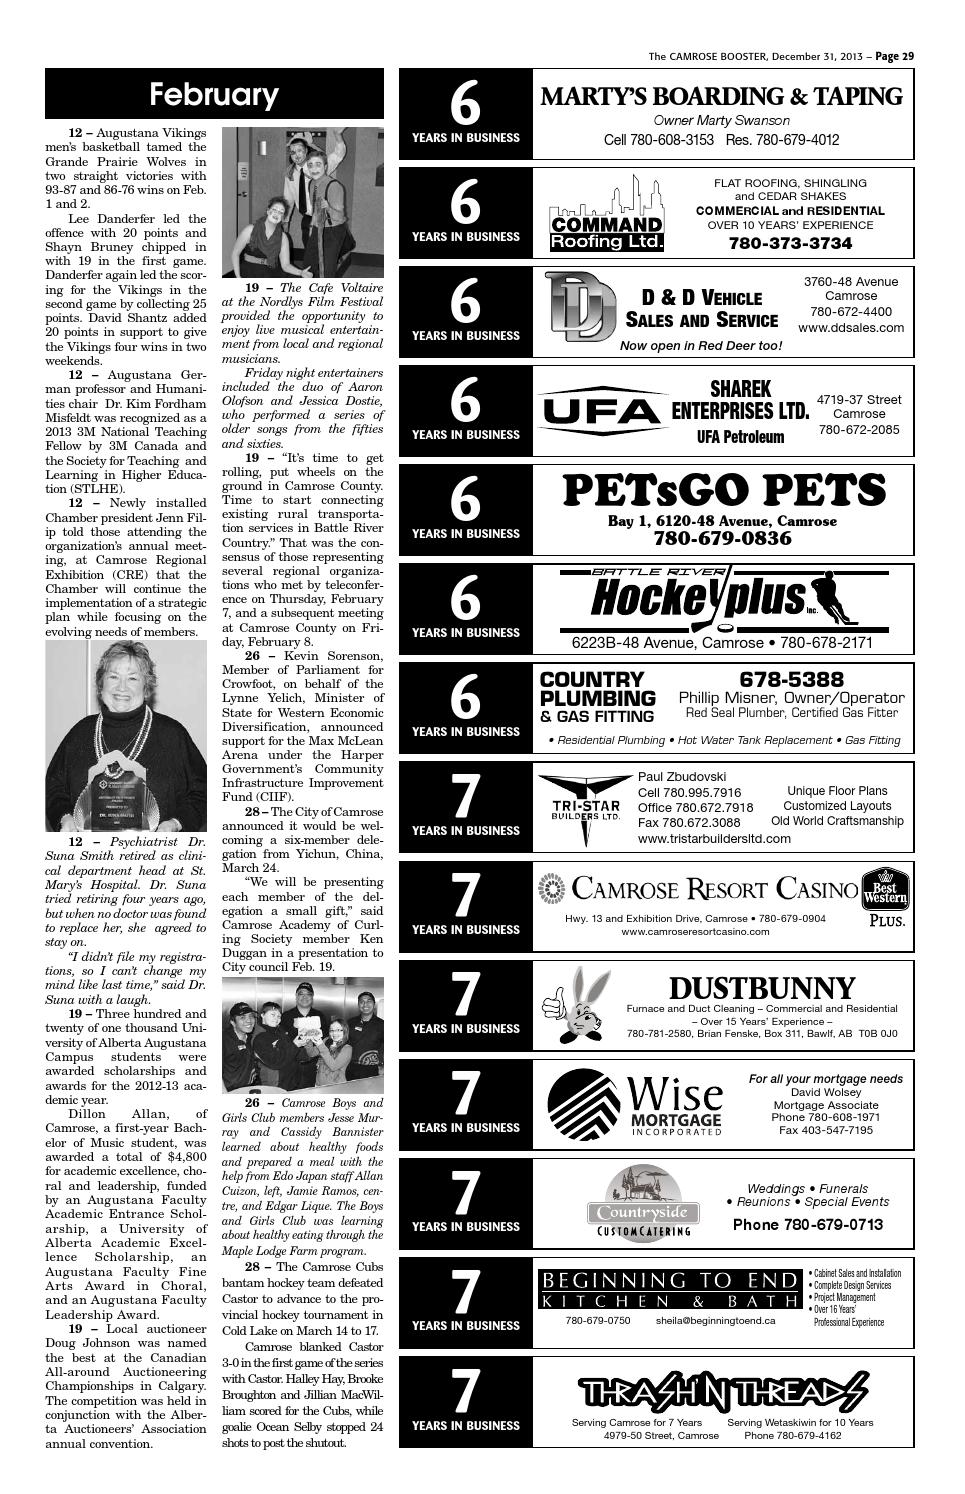 The Camrose Booster December 31 2013 By The Camrose Booster Issuu